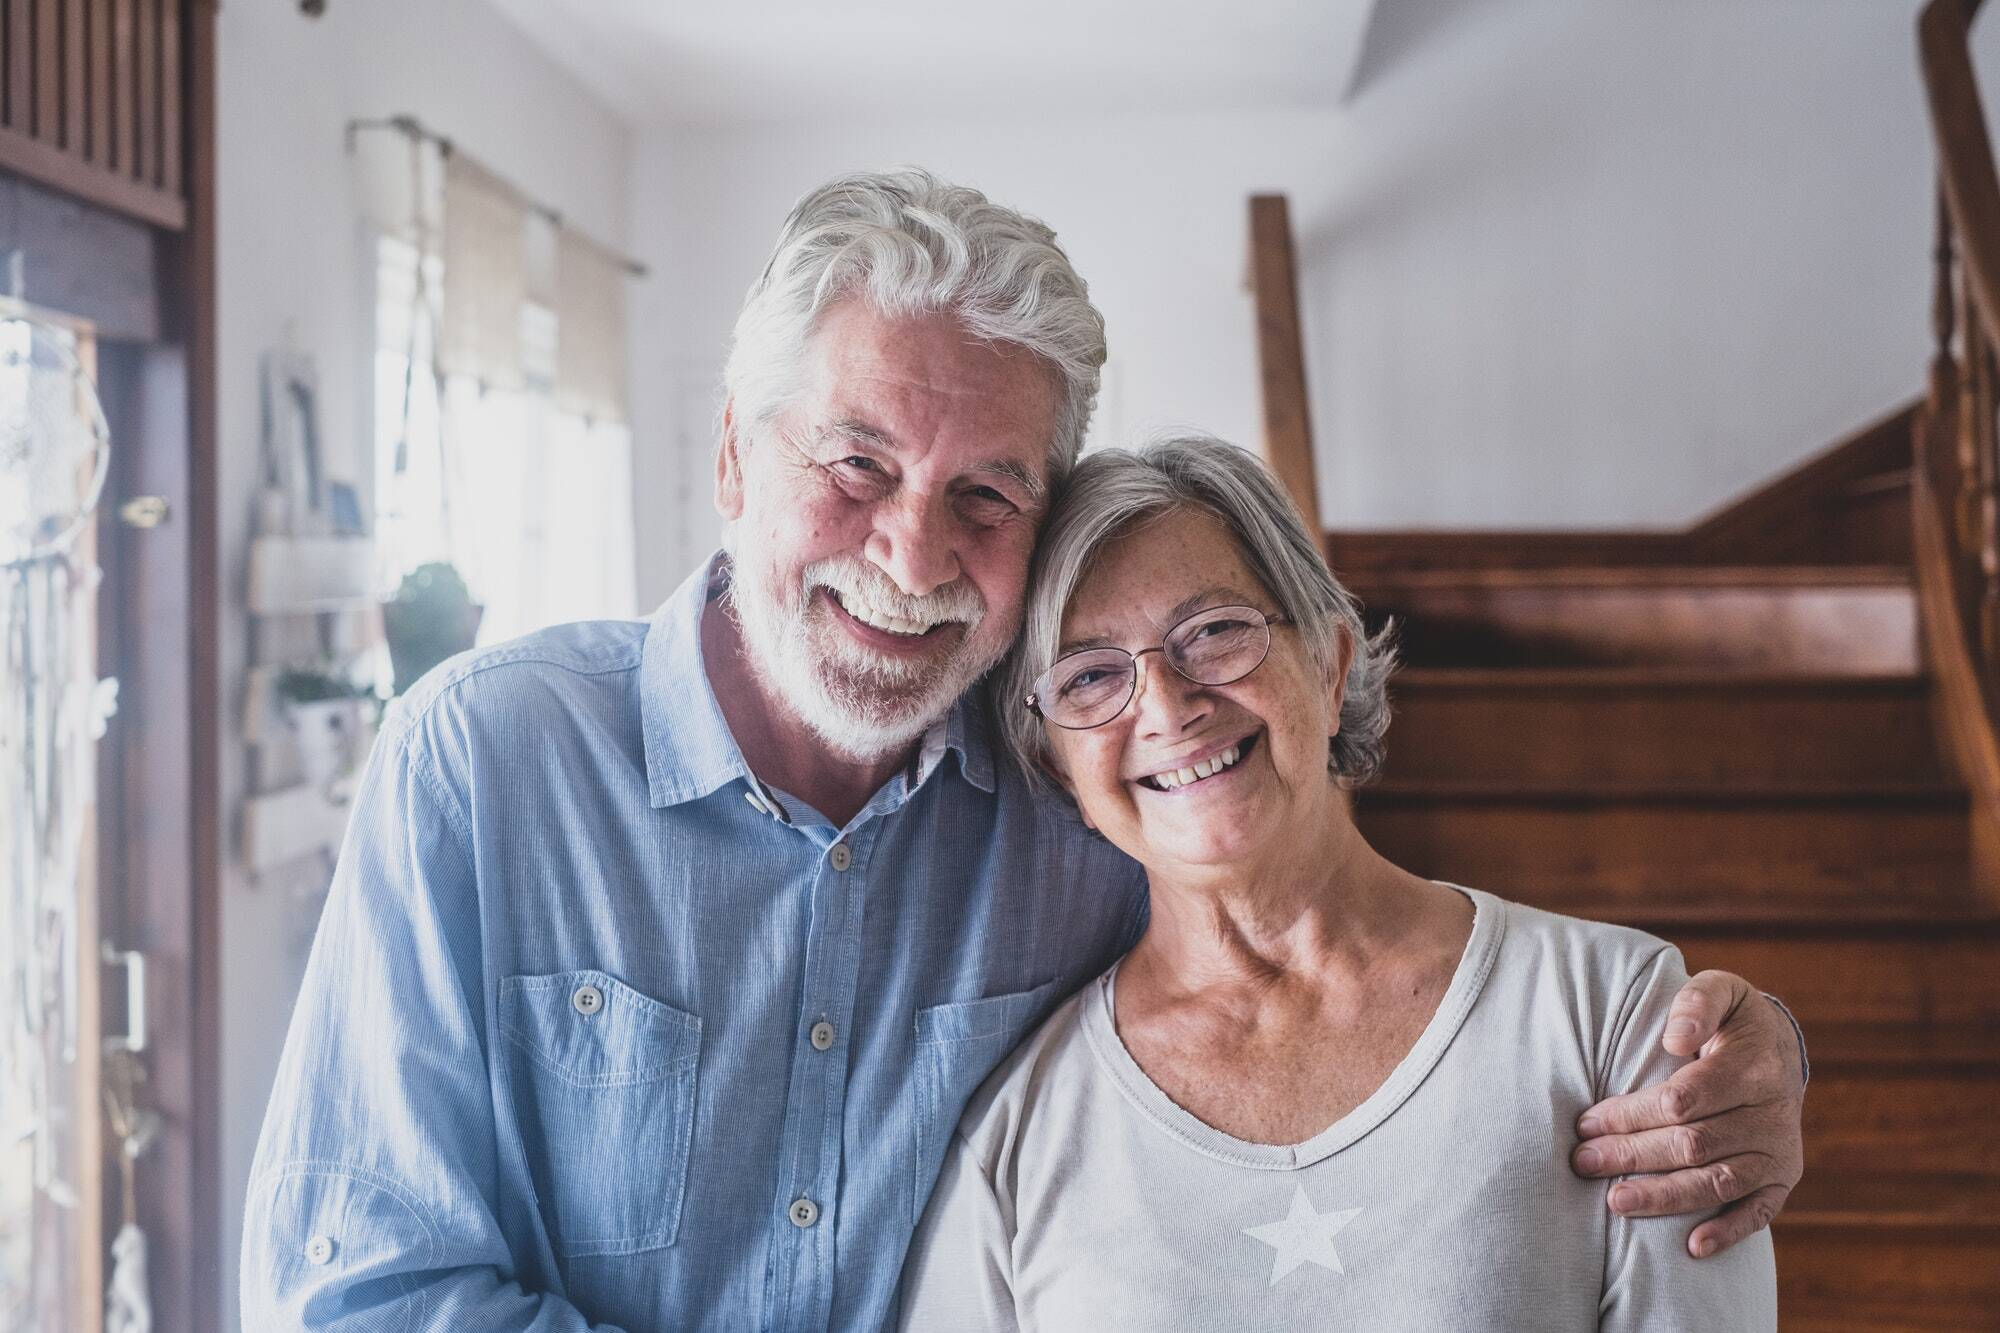 Portrait of happy couple old people seniors hug together, looking at the camera, loving to mature